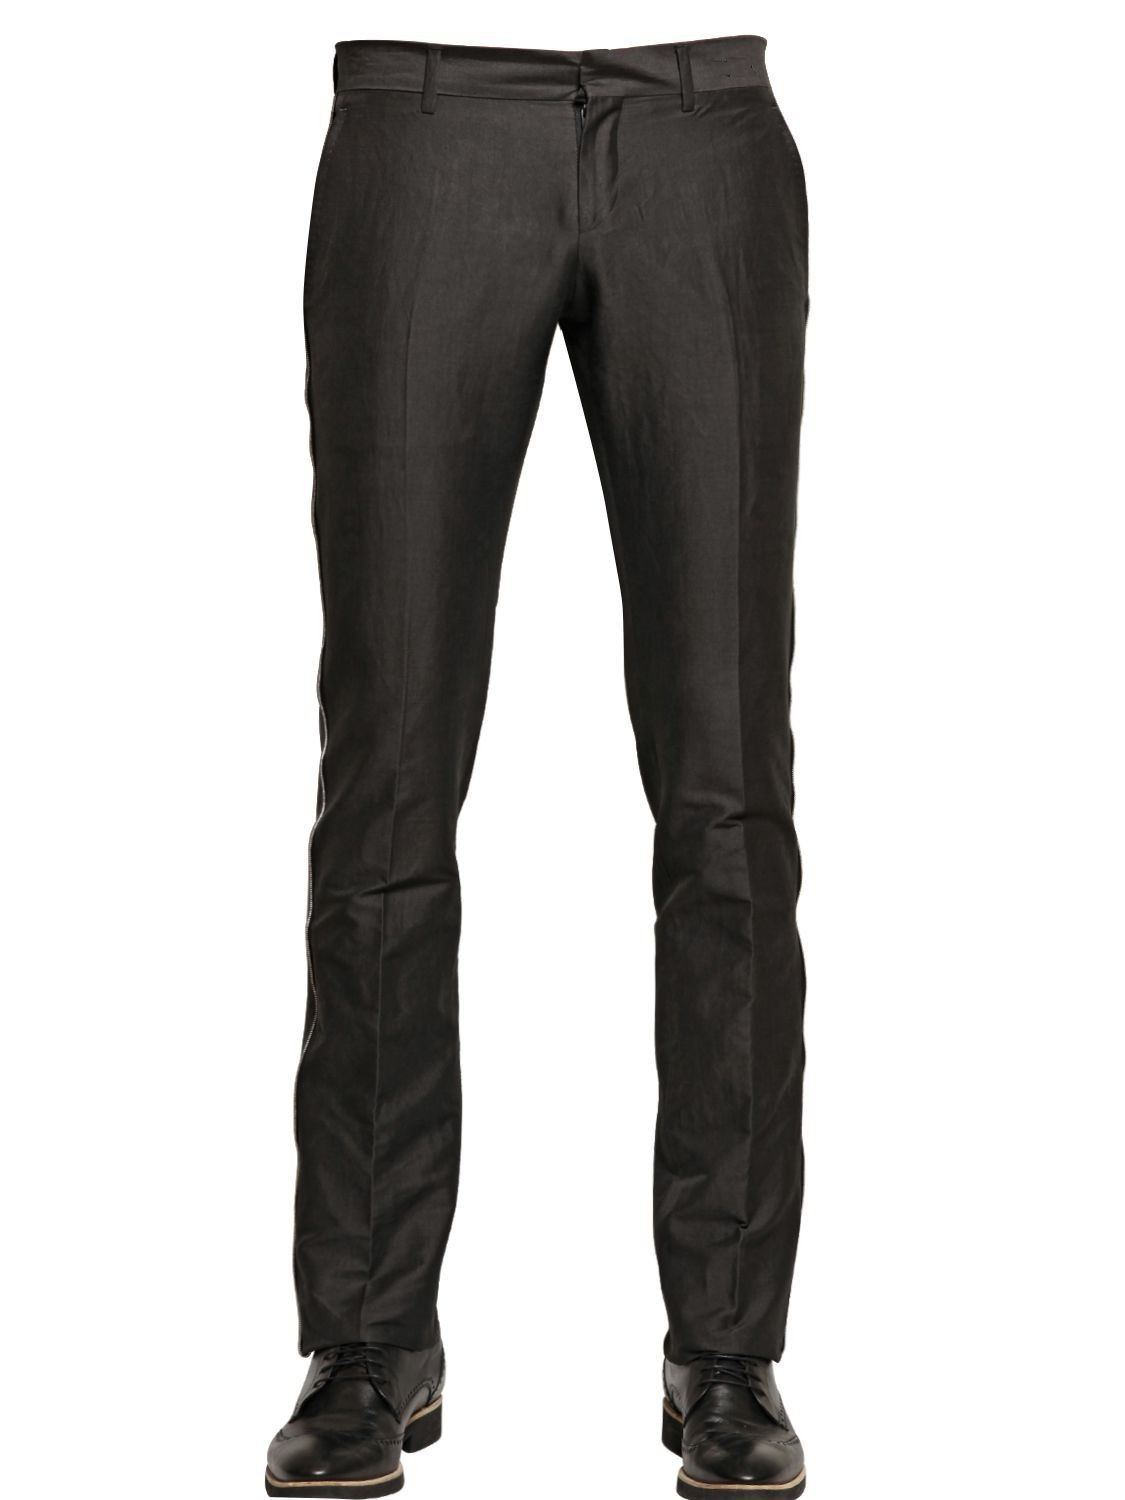 Mens Formal Stylish Trousers Front